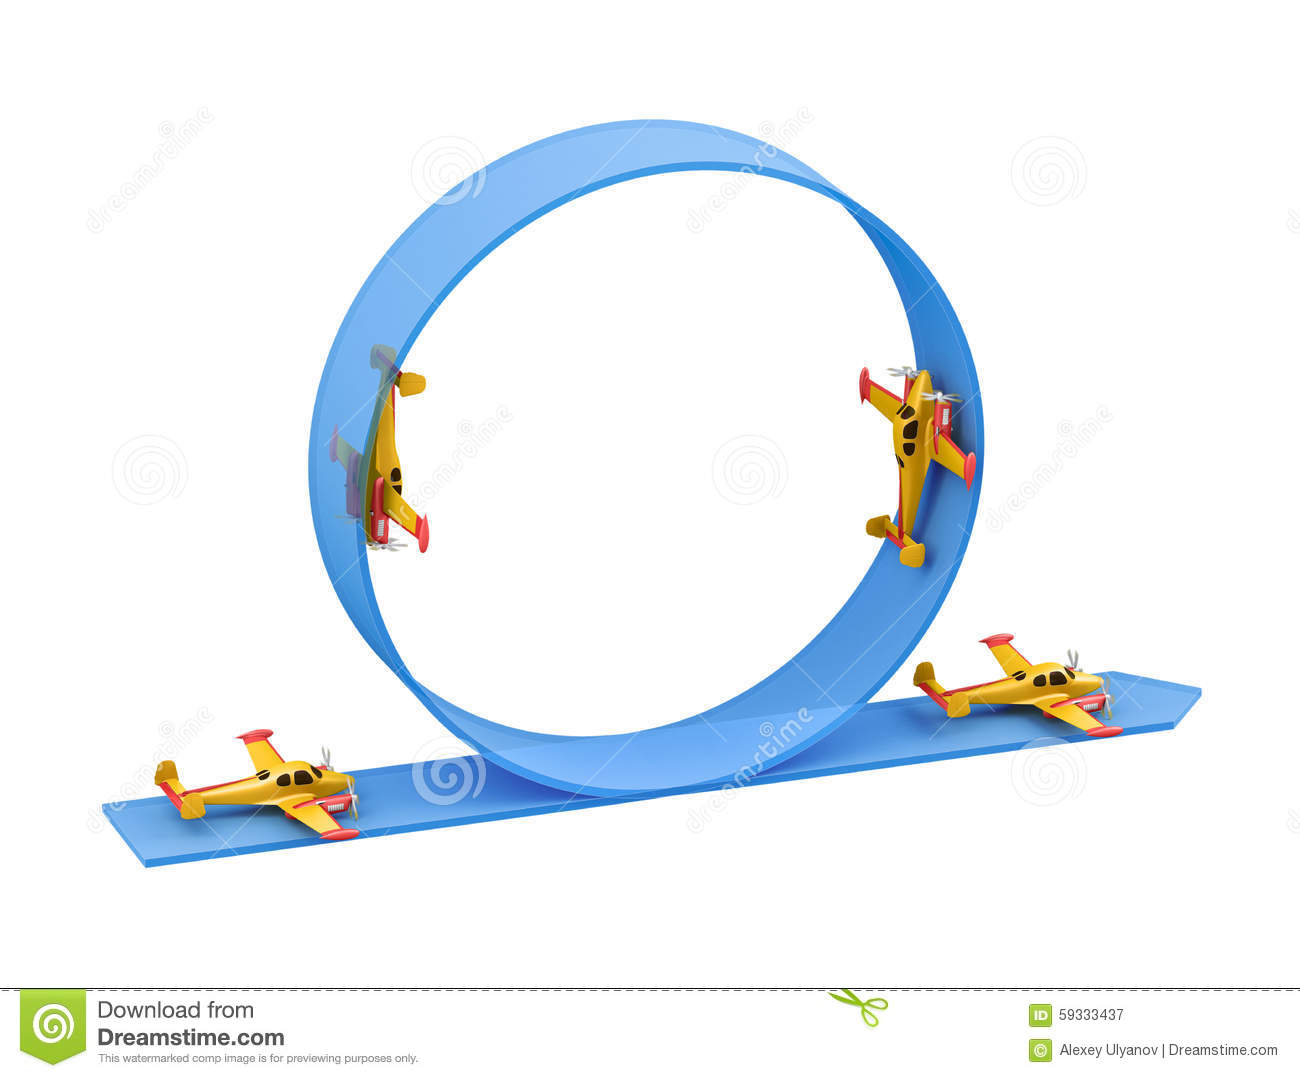 illustration of aerobatics loop with yellow airplane model over blue rh dreamstime com